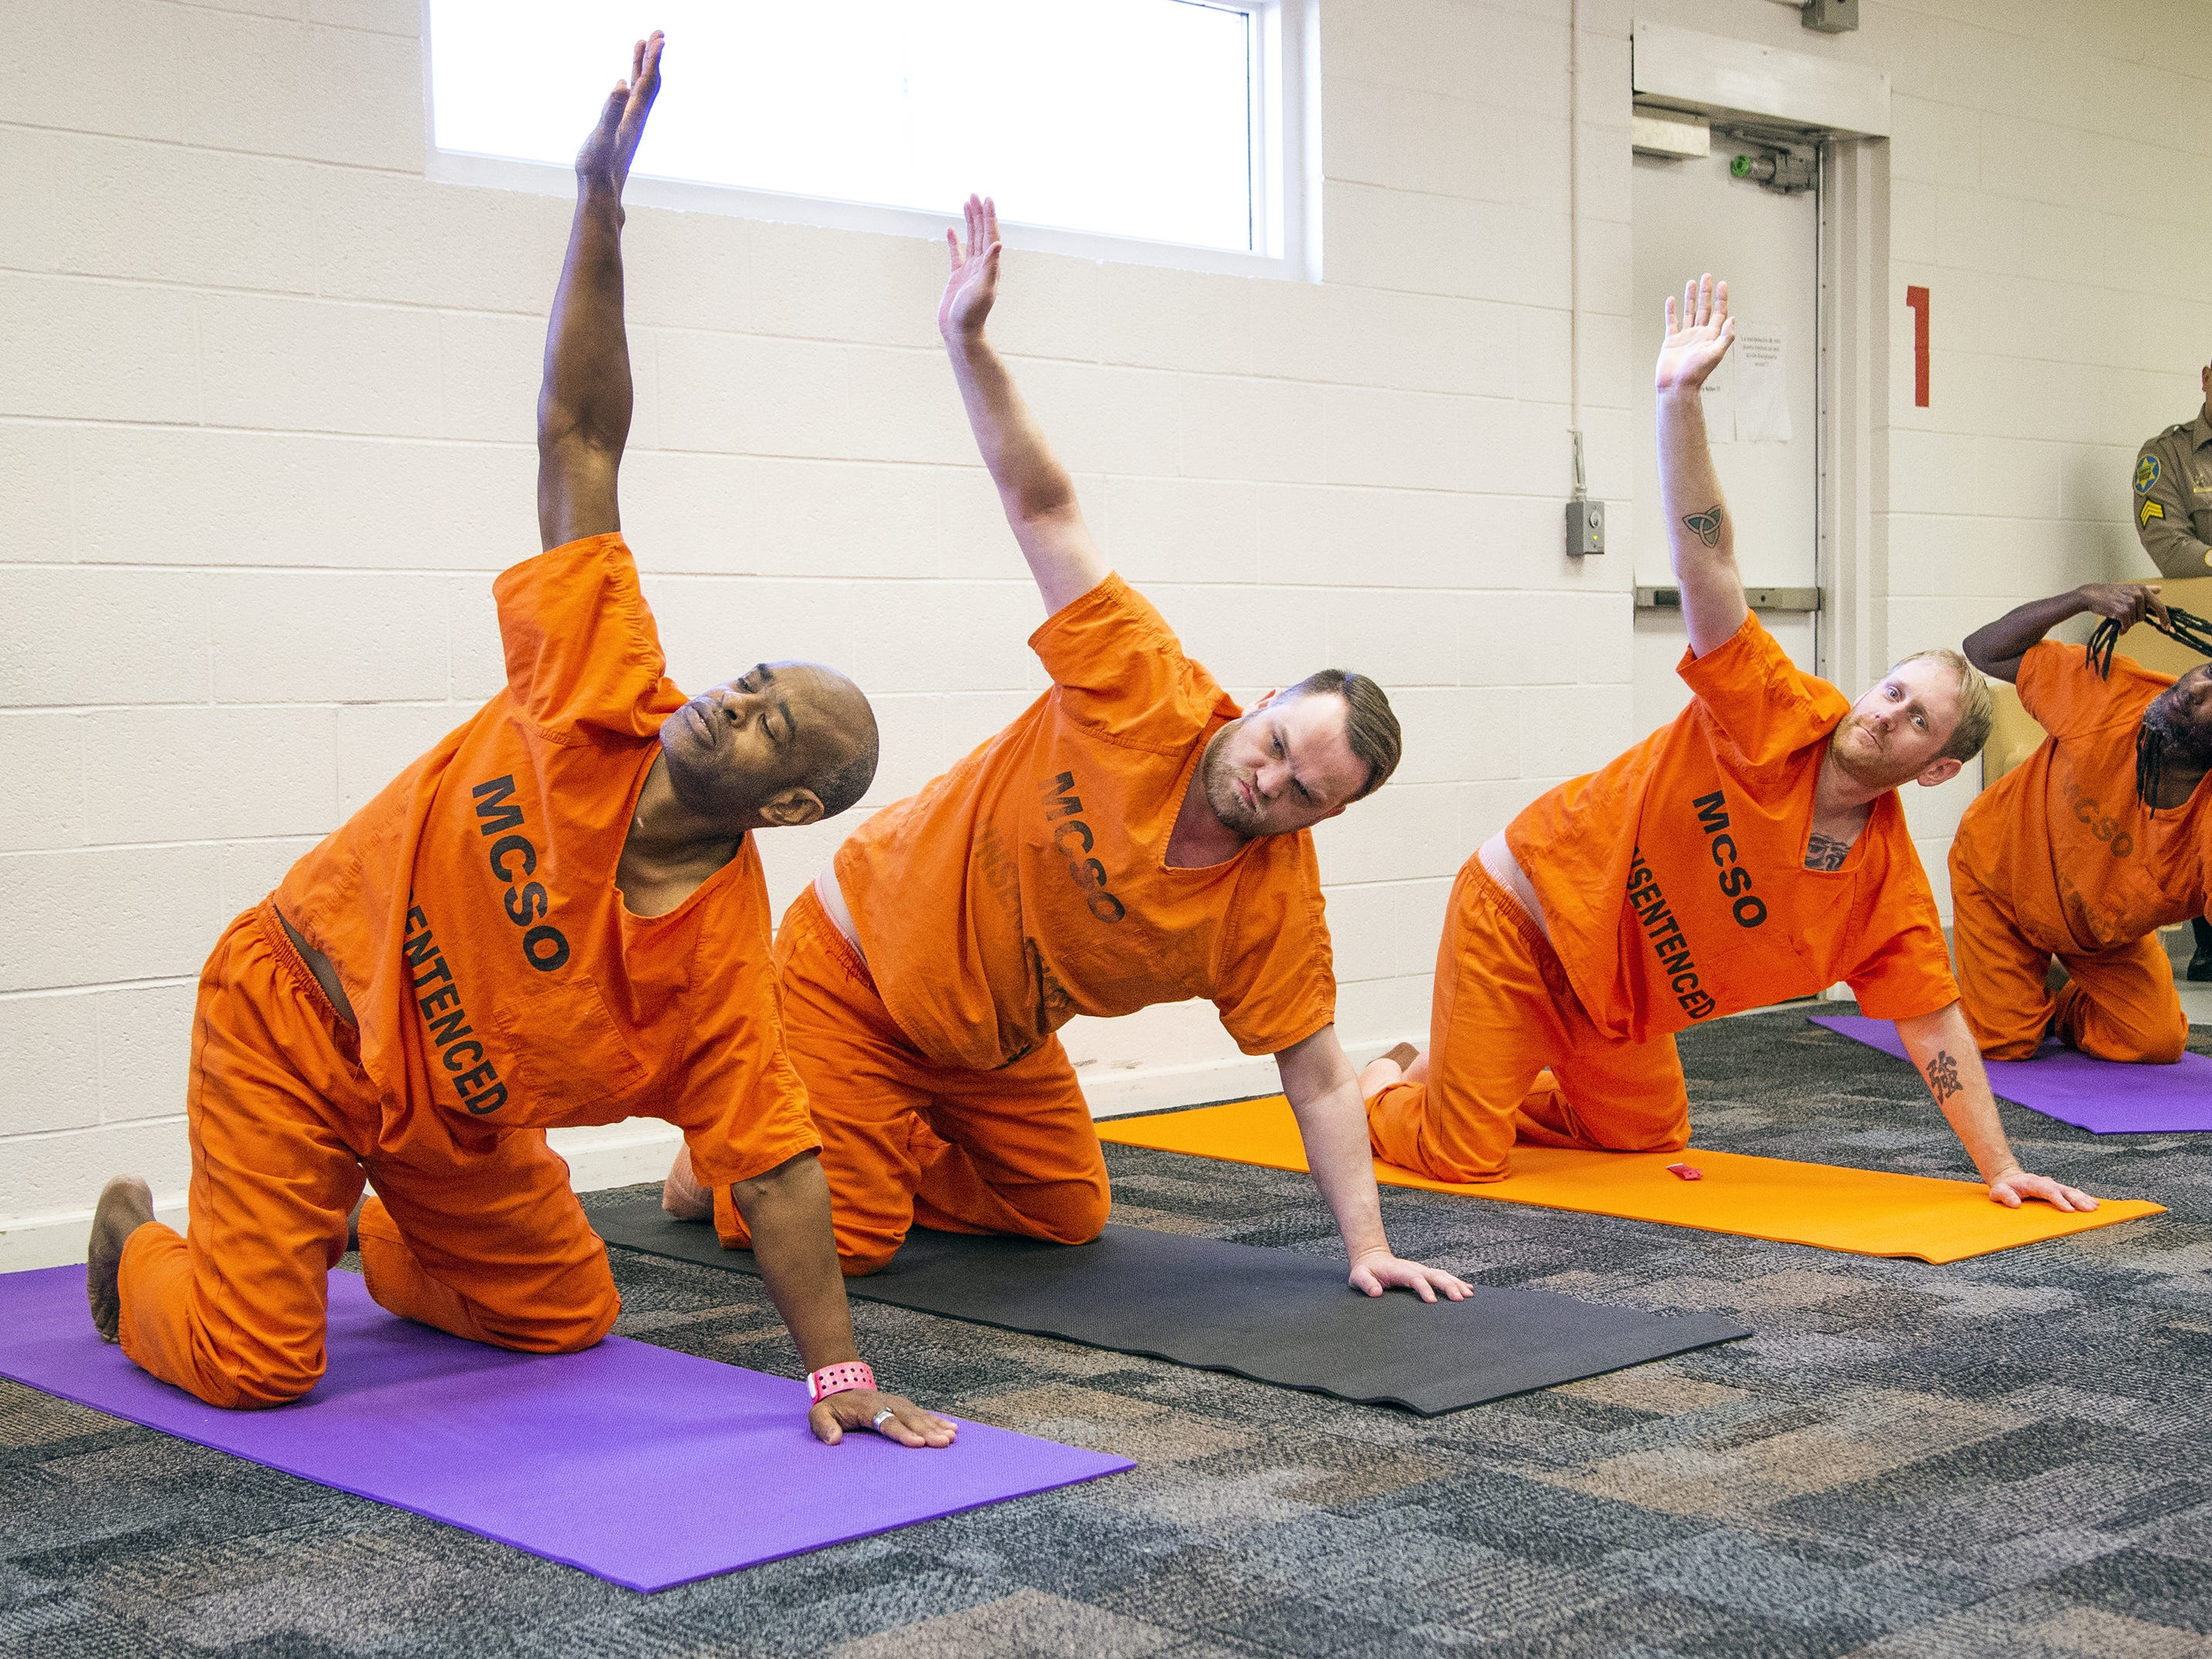 Inmates practice yoga during a class run by the Prison Yoga Project Phoenix at the Maricopa County Towers Jail complex on Jan. 11, 2019.